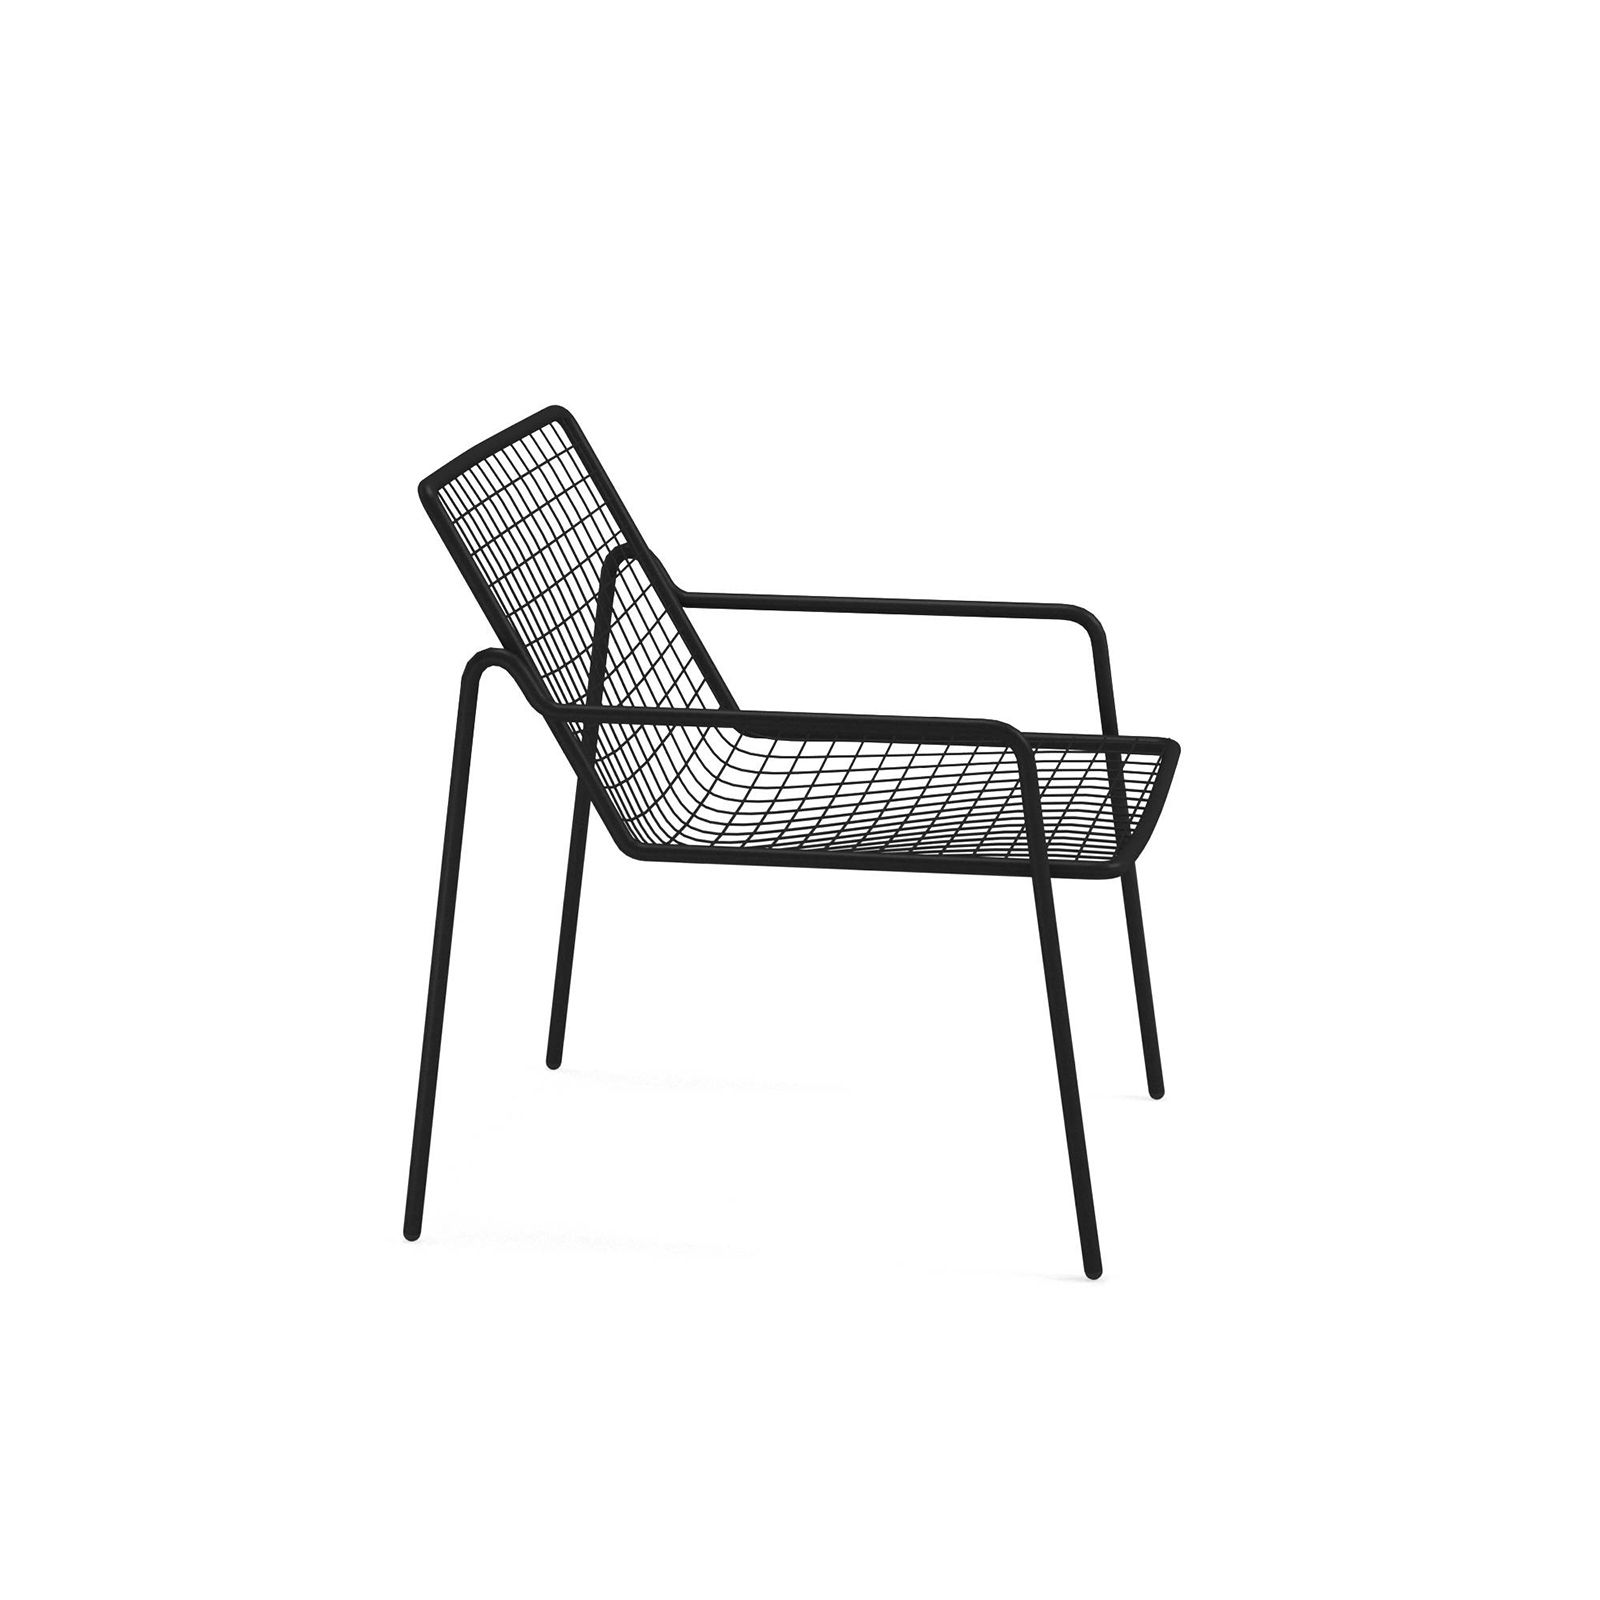 RIO R50 LOUNGE CHAIR